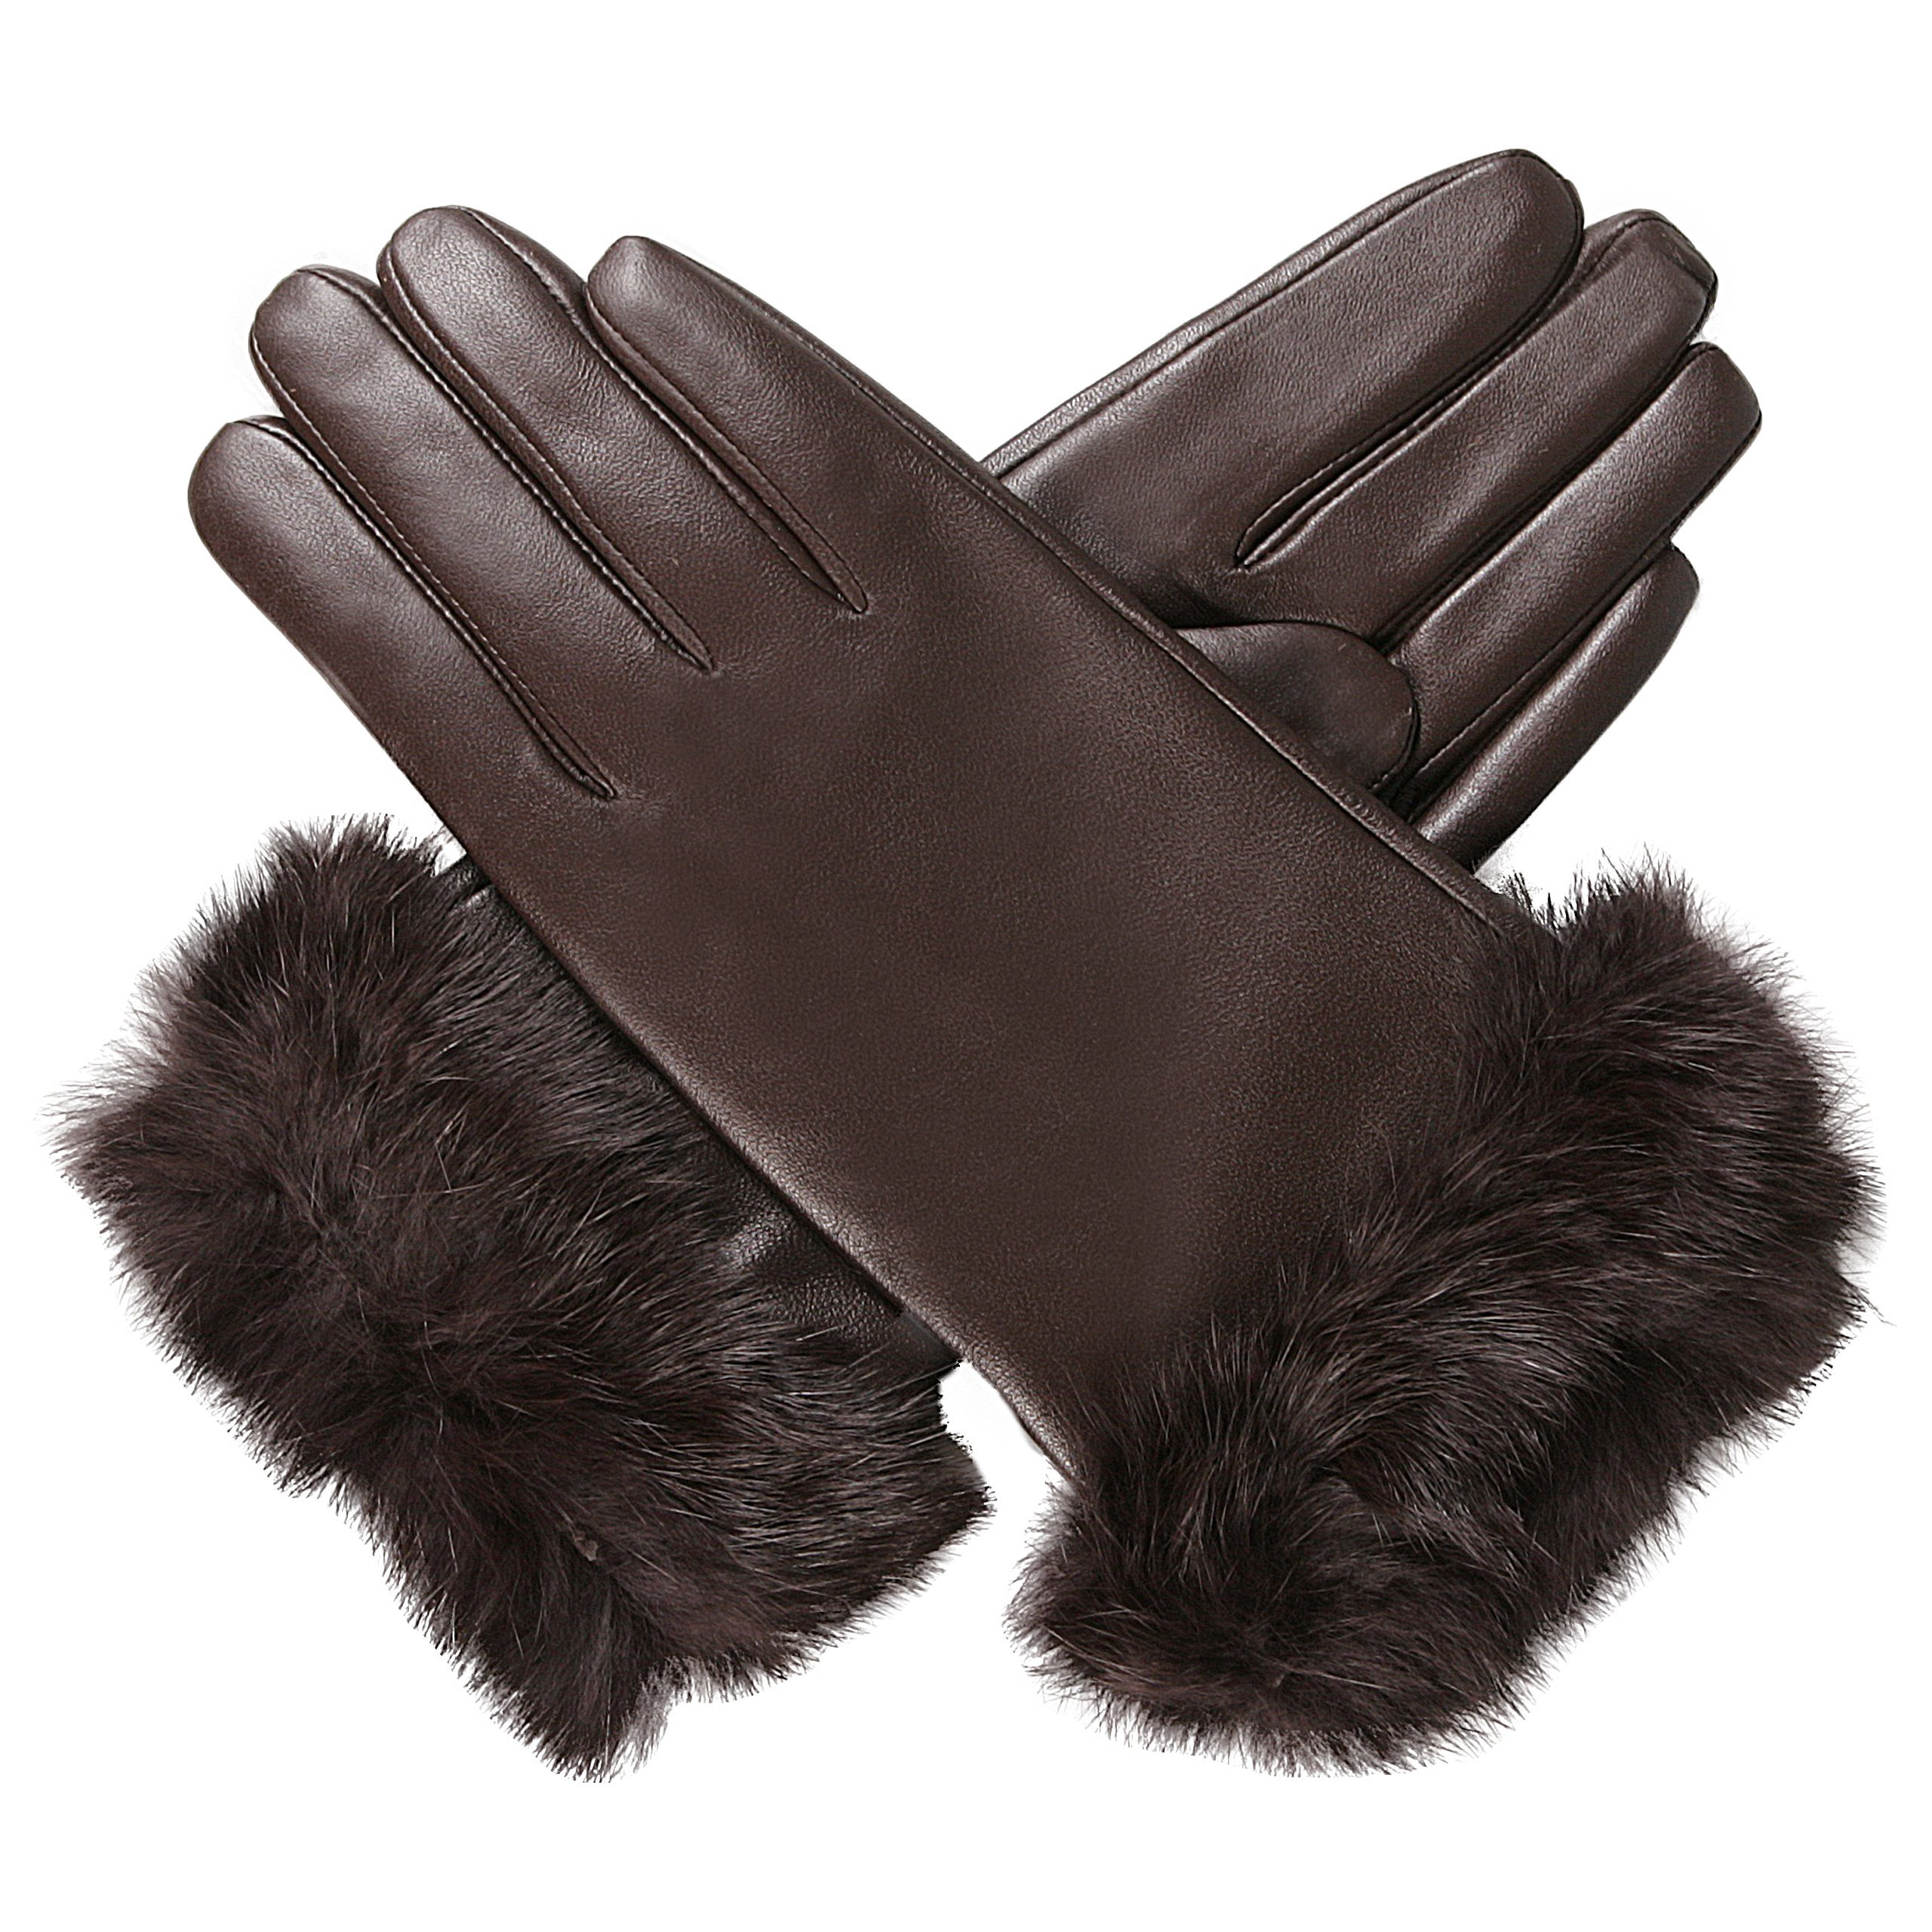 Luxury Lane Women's Rabbit Fur Cuff Cashmere Lined Lambskin Leather Gloves - Chocolate Medium by Luxury Lane (Image #4)